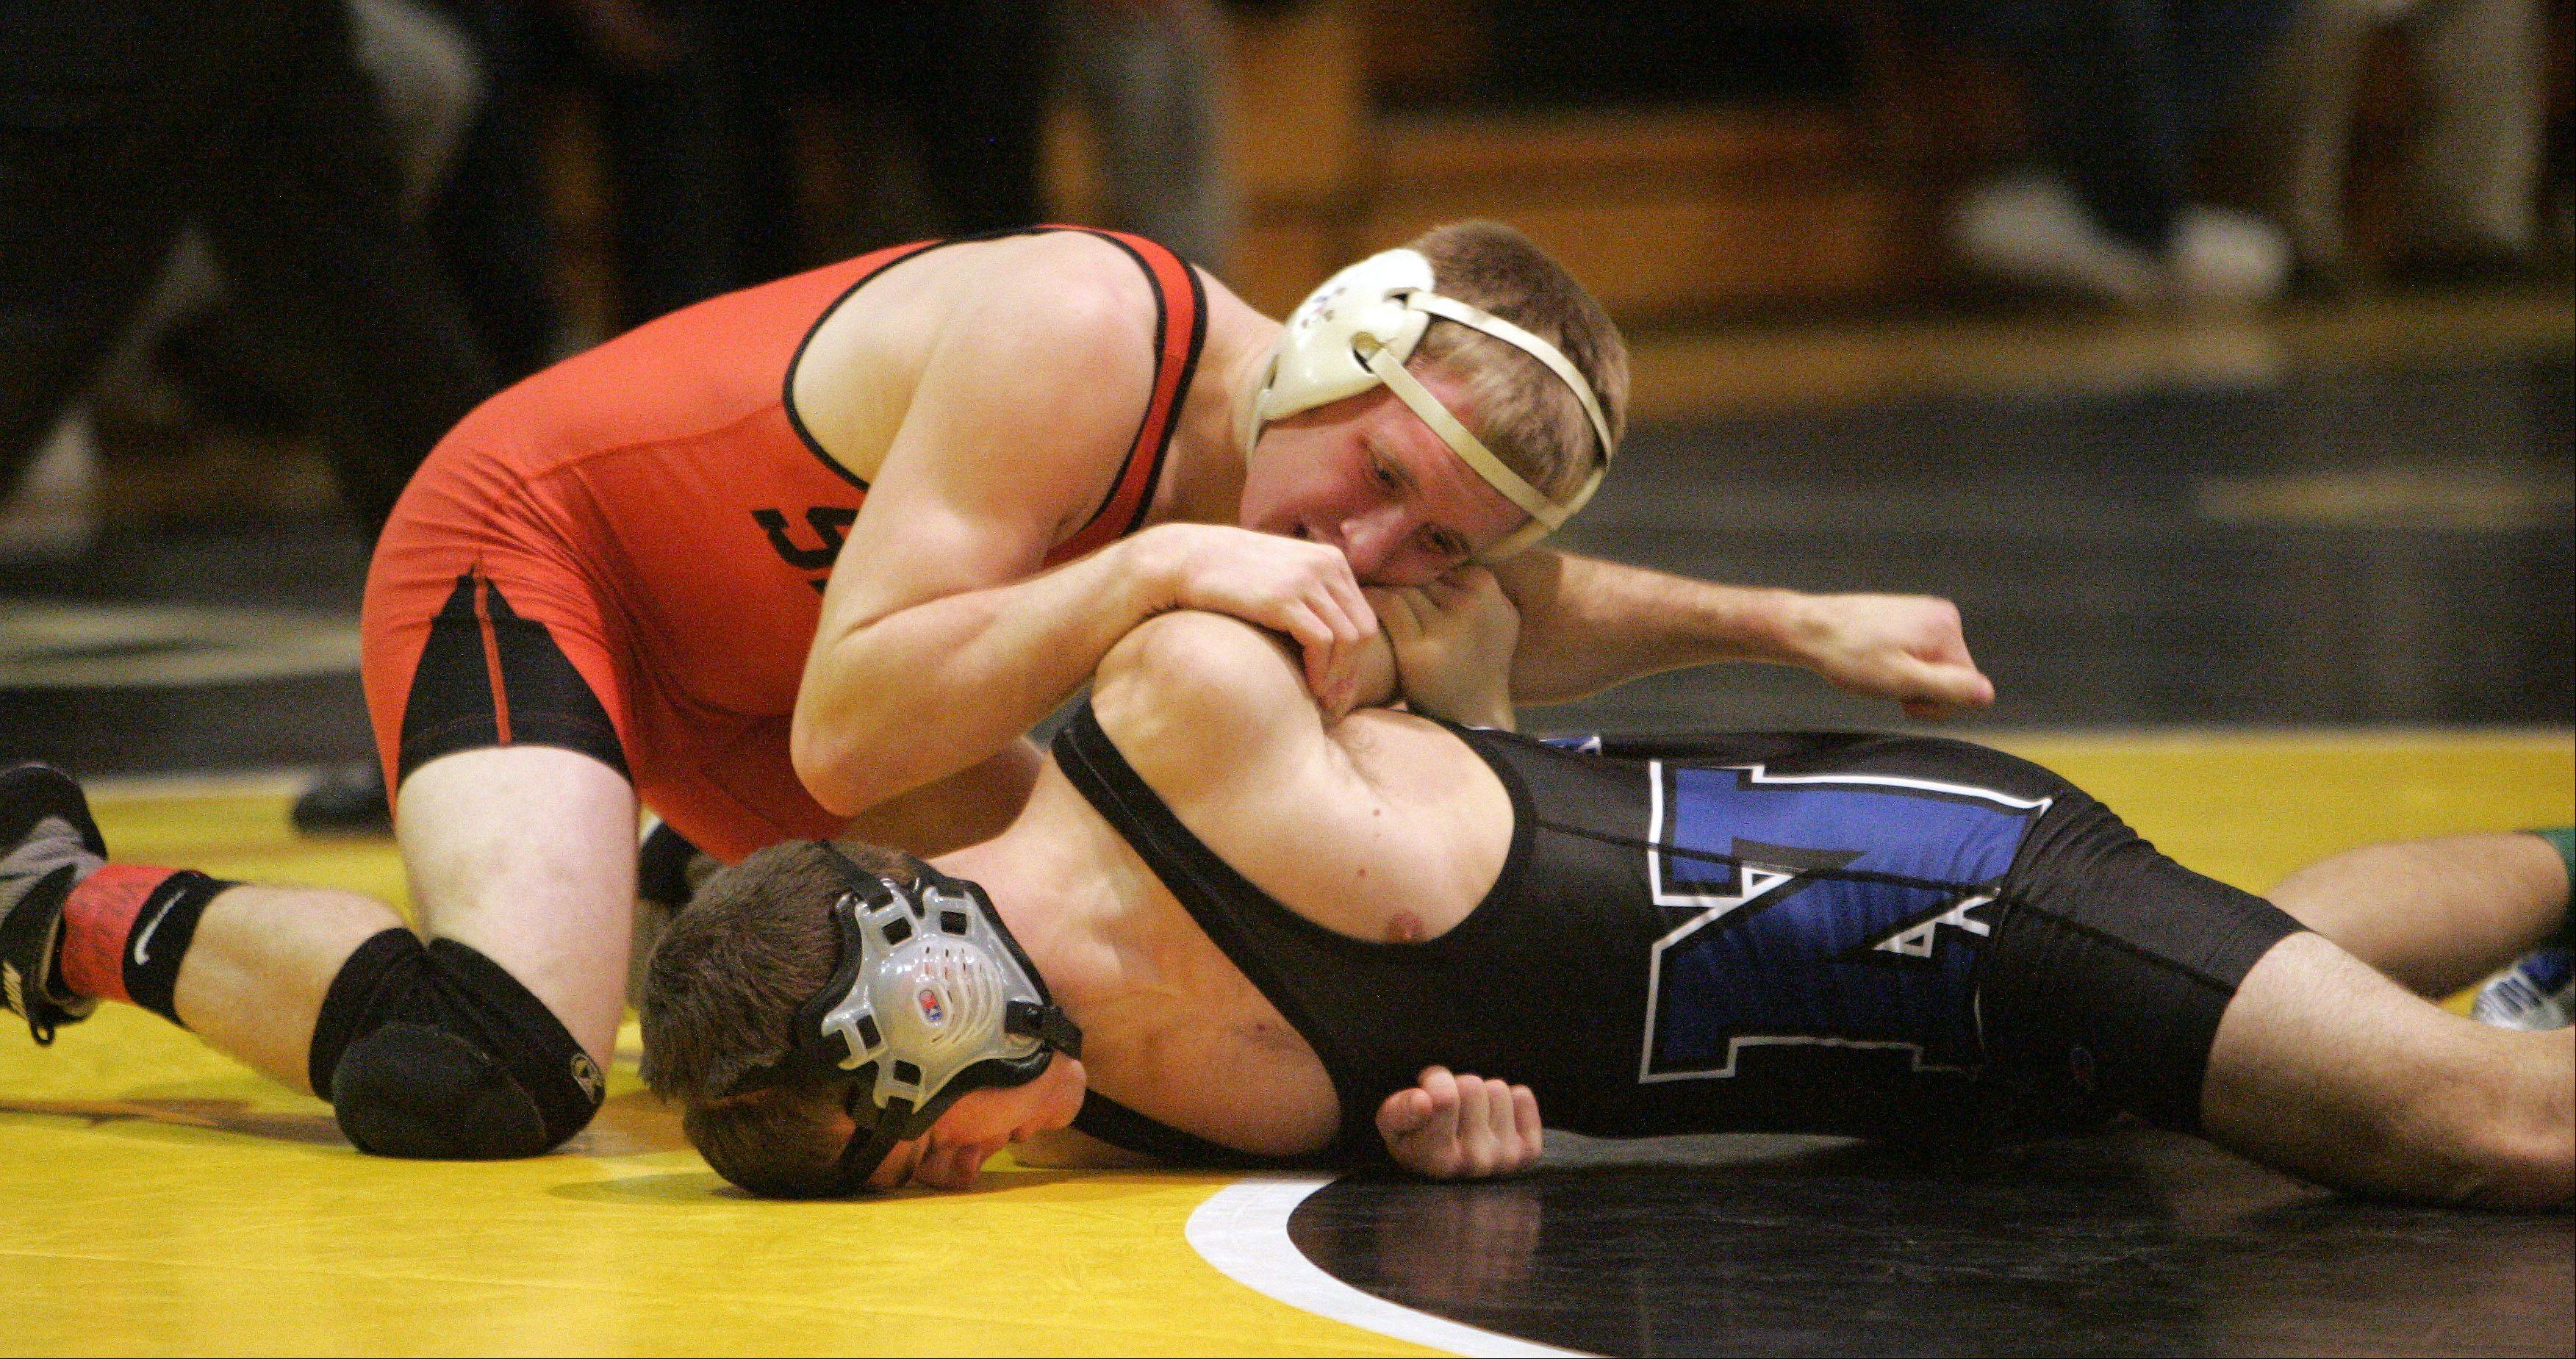 St. Charles East's Jake Mende wrestles St. Charles North's Kevin Deisher during the 138 pound IHSA Regional wrestling match for third place at Glenbard North Saturday February 2, 2013. Mende won the match.